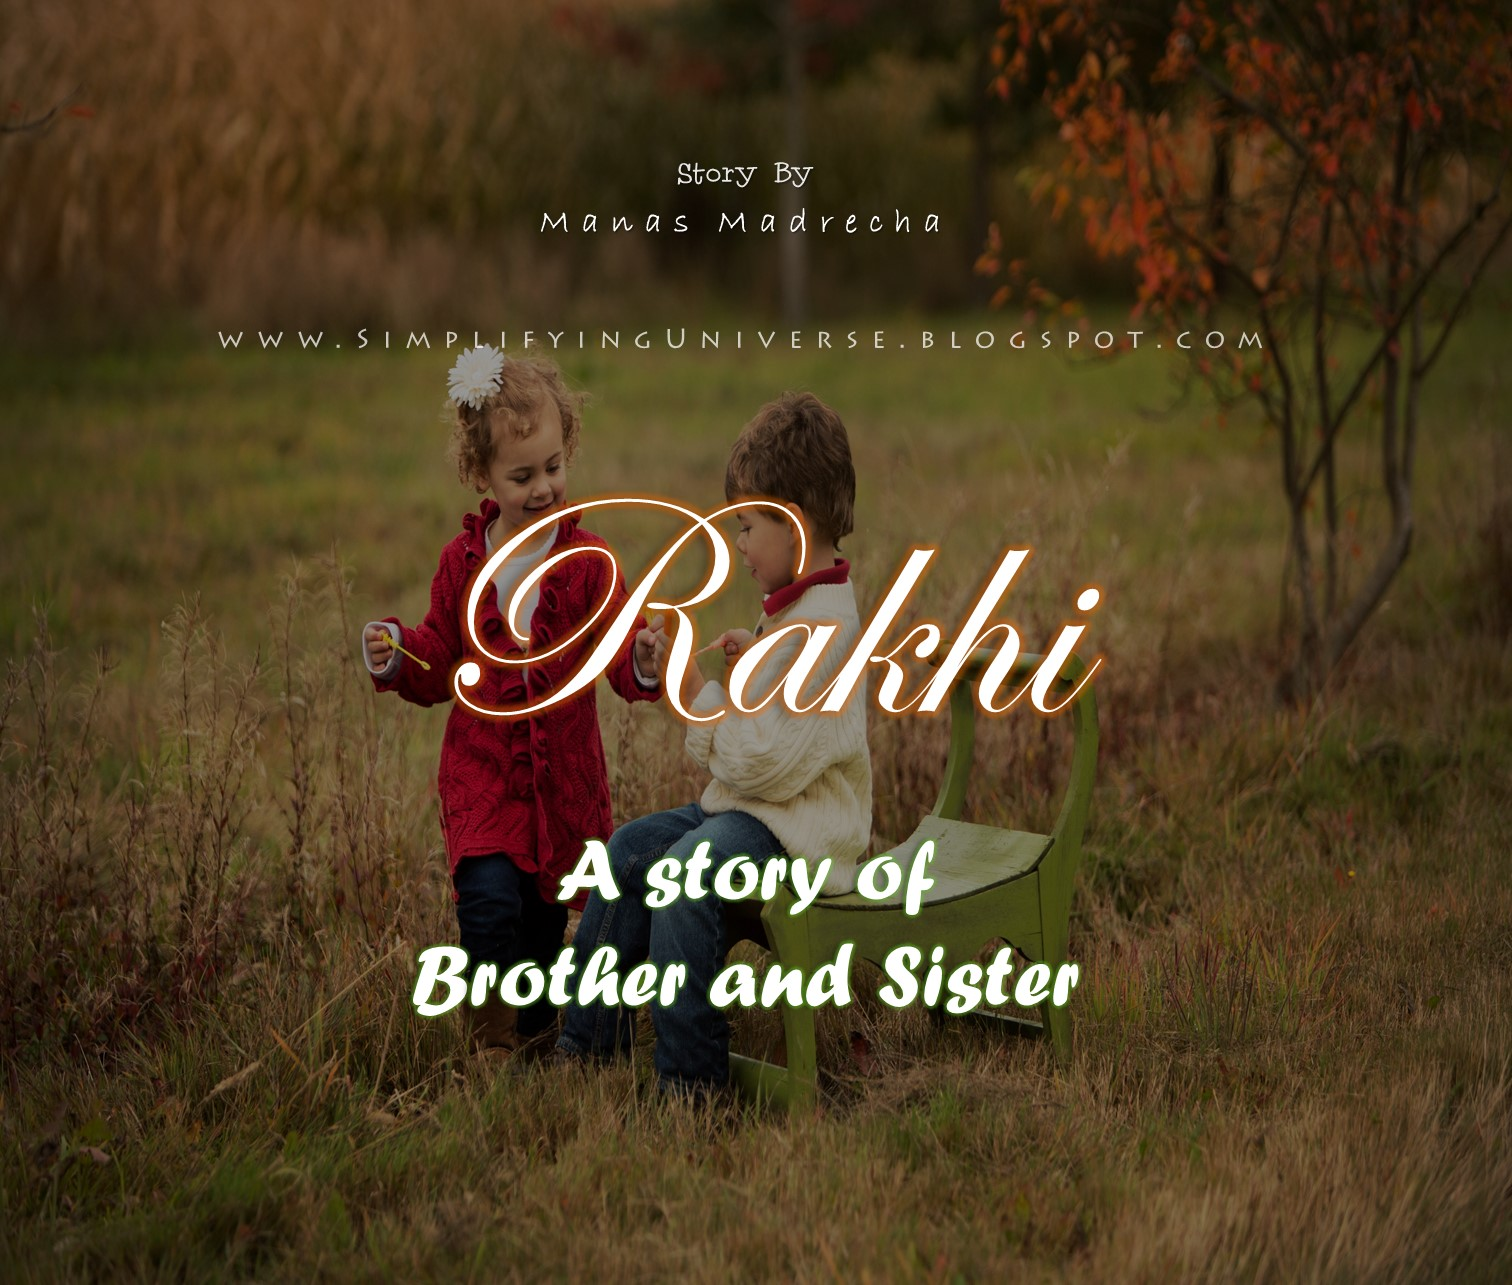 Cute Brother And Sister Quotes Rakhi  A Story Of Brother And Sister  Manas Madrecha